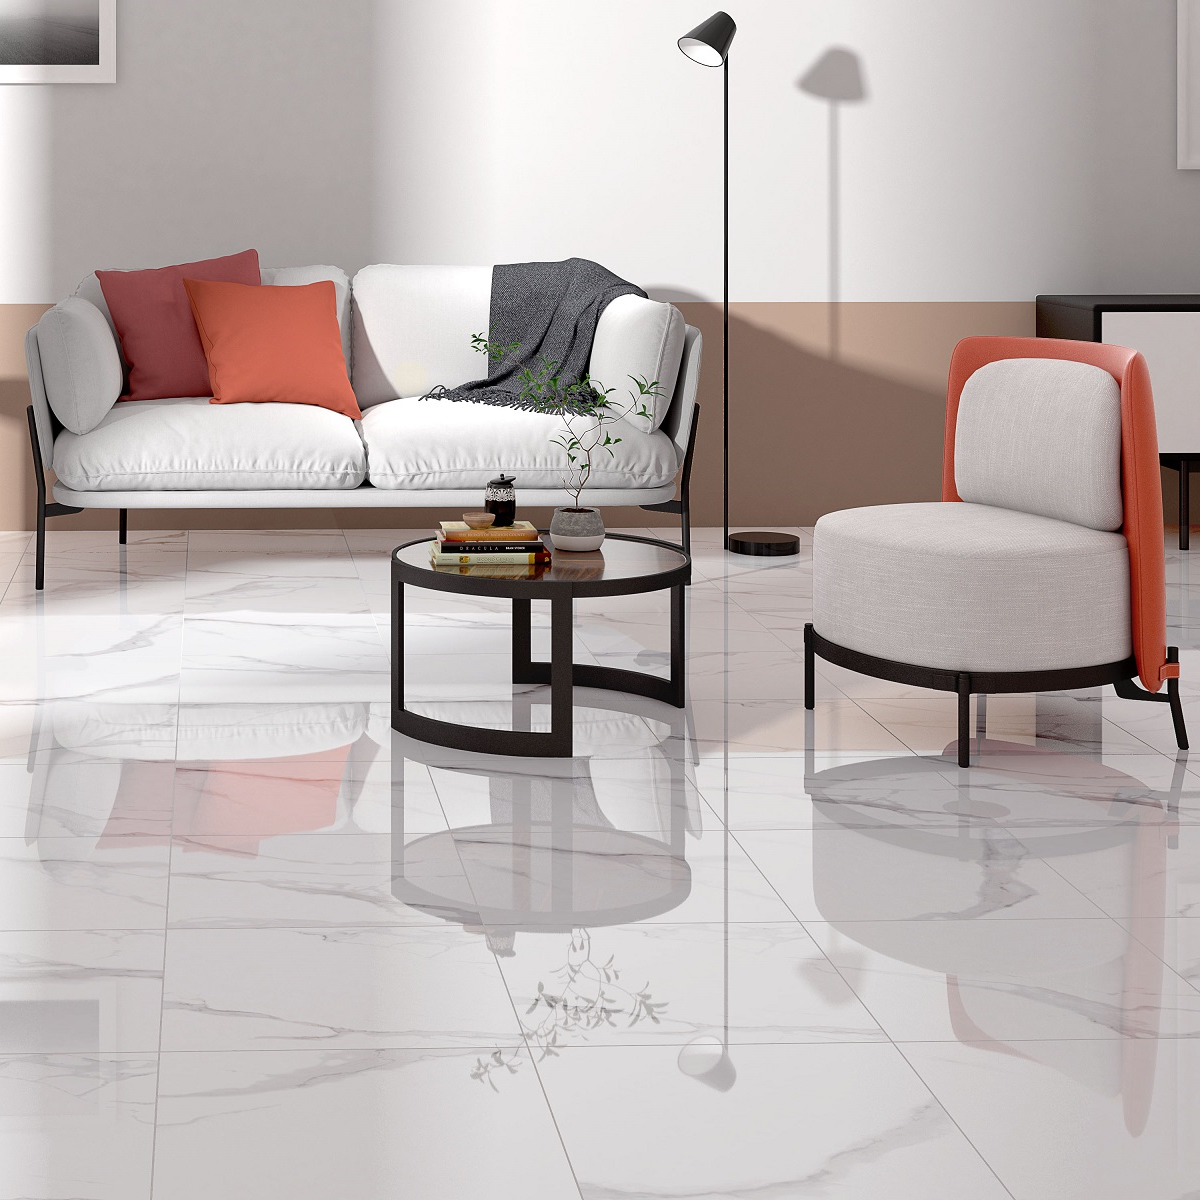 Italian Inspired Calacatta Style Marble Red Body Floor Tiles with High gloss Finish